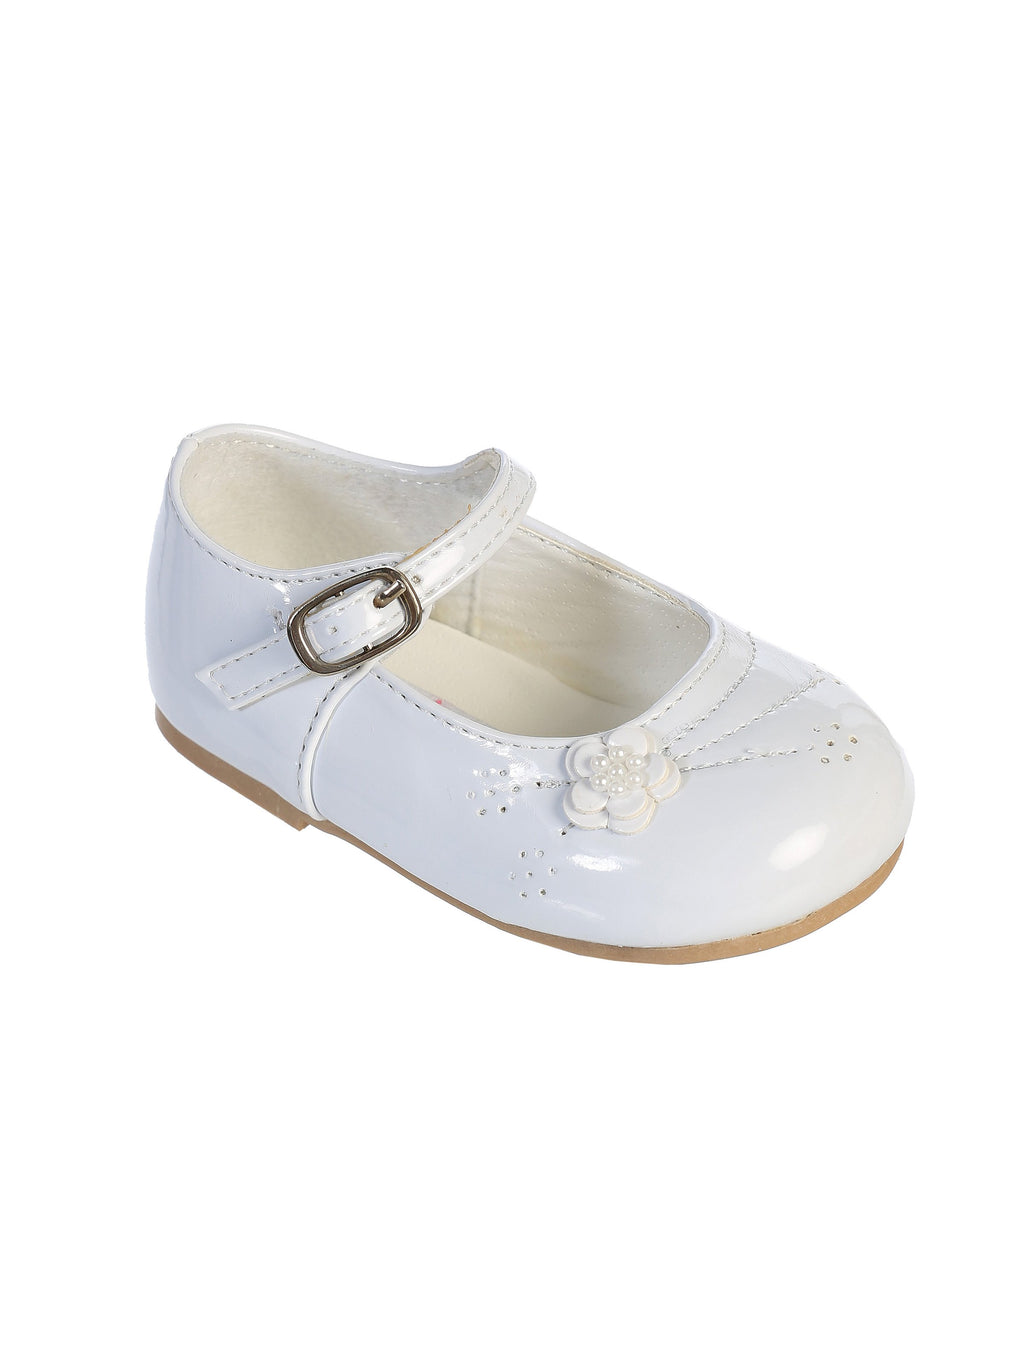 Ivory Little Girl's Mary Jane with Embellished Front & Flower Accent on the Side